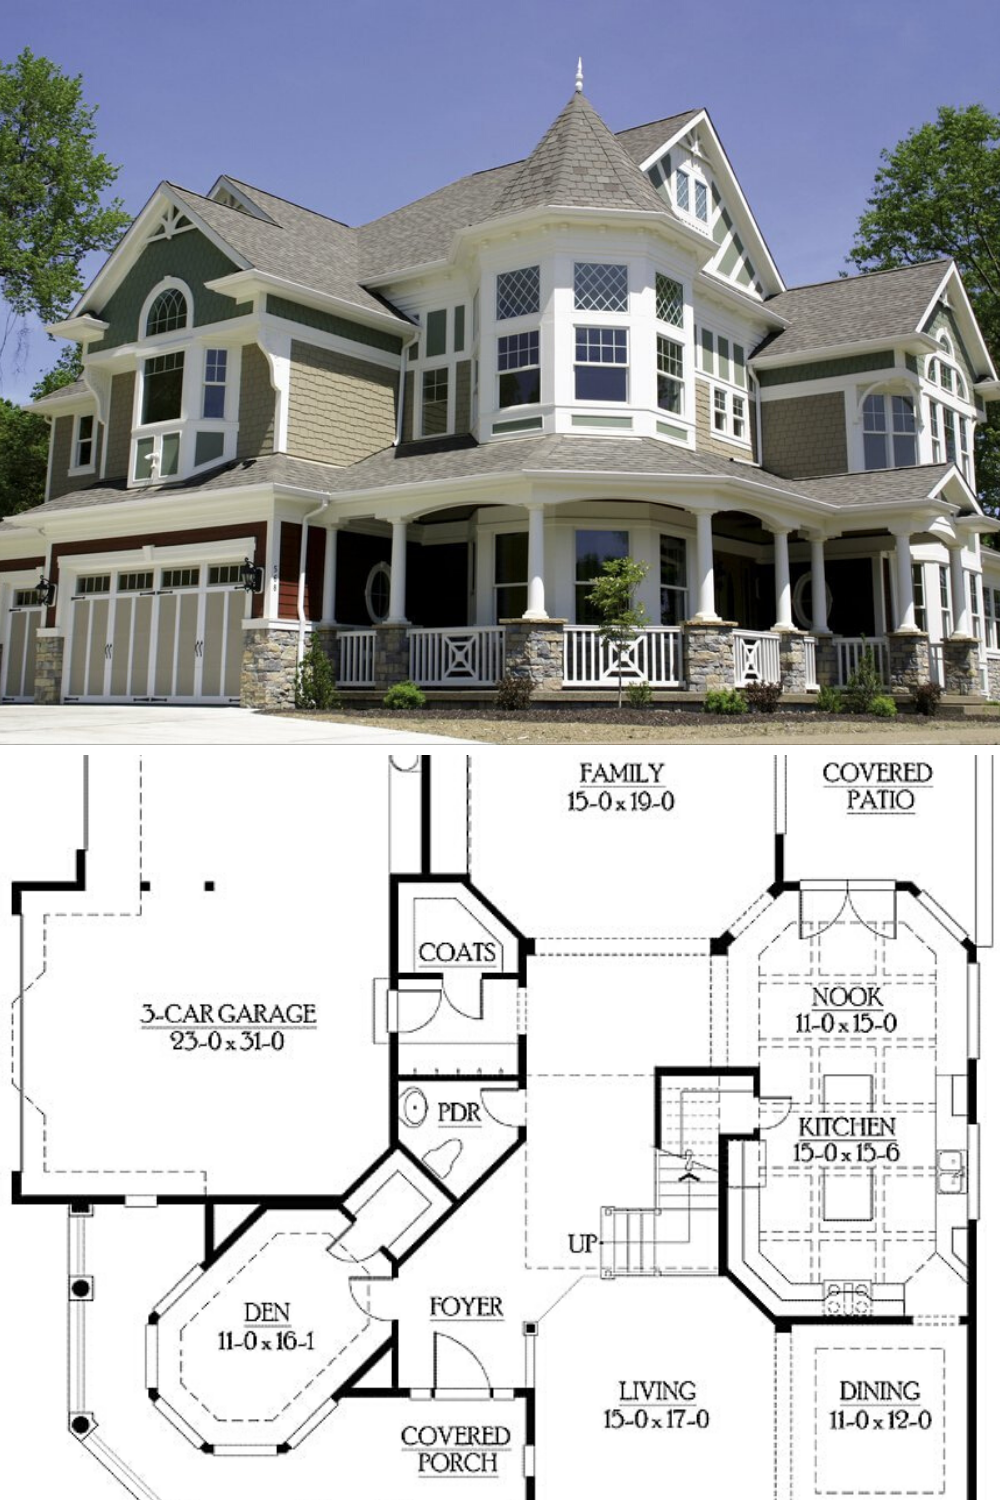 4 Bedroom Two Story Luxurious Victorian Home Floor Plan In 2020 Victorian House Plans Victorian Homes House Plans Mansion